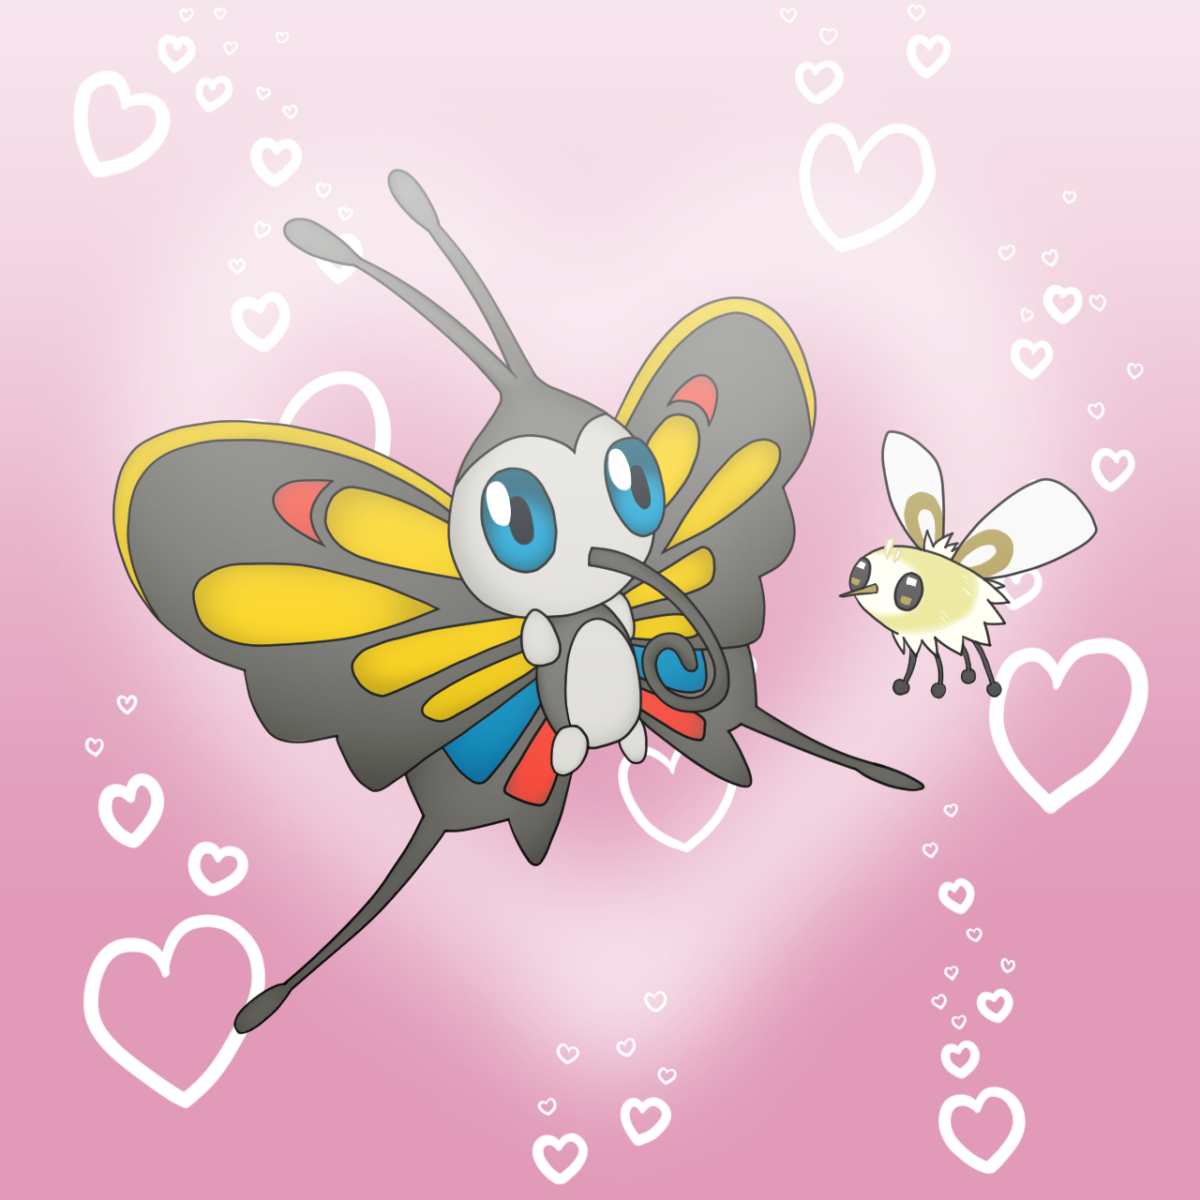 Beautifly and Cutiefly by CyaniDairySentinel on DeviantArt